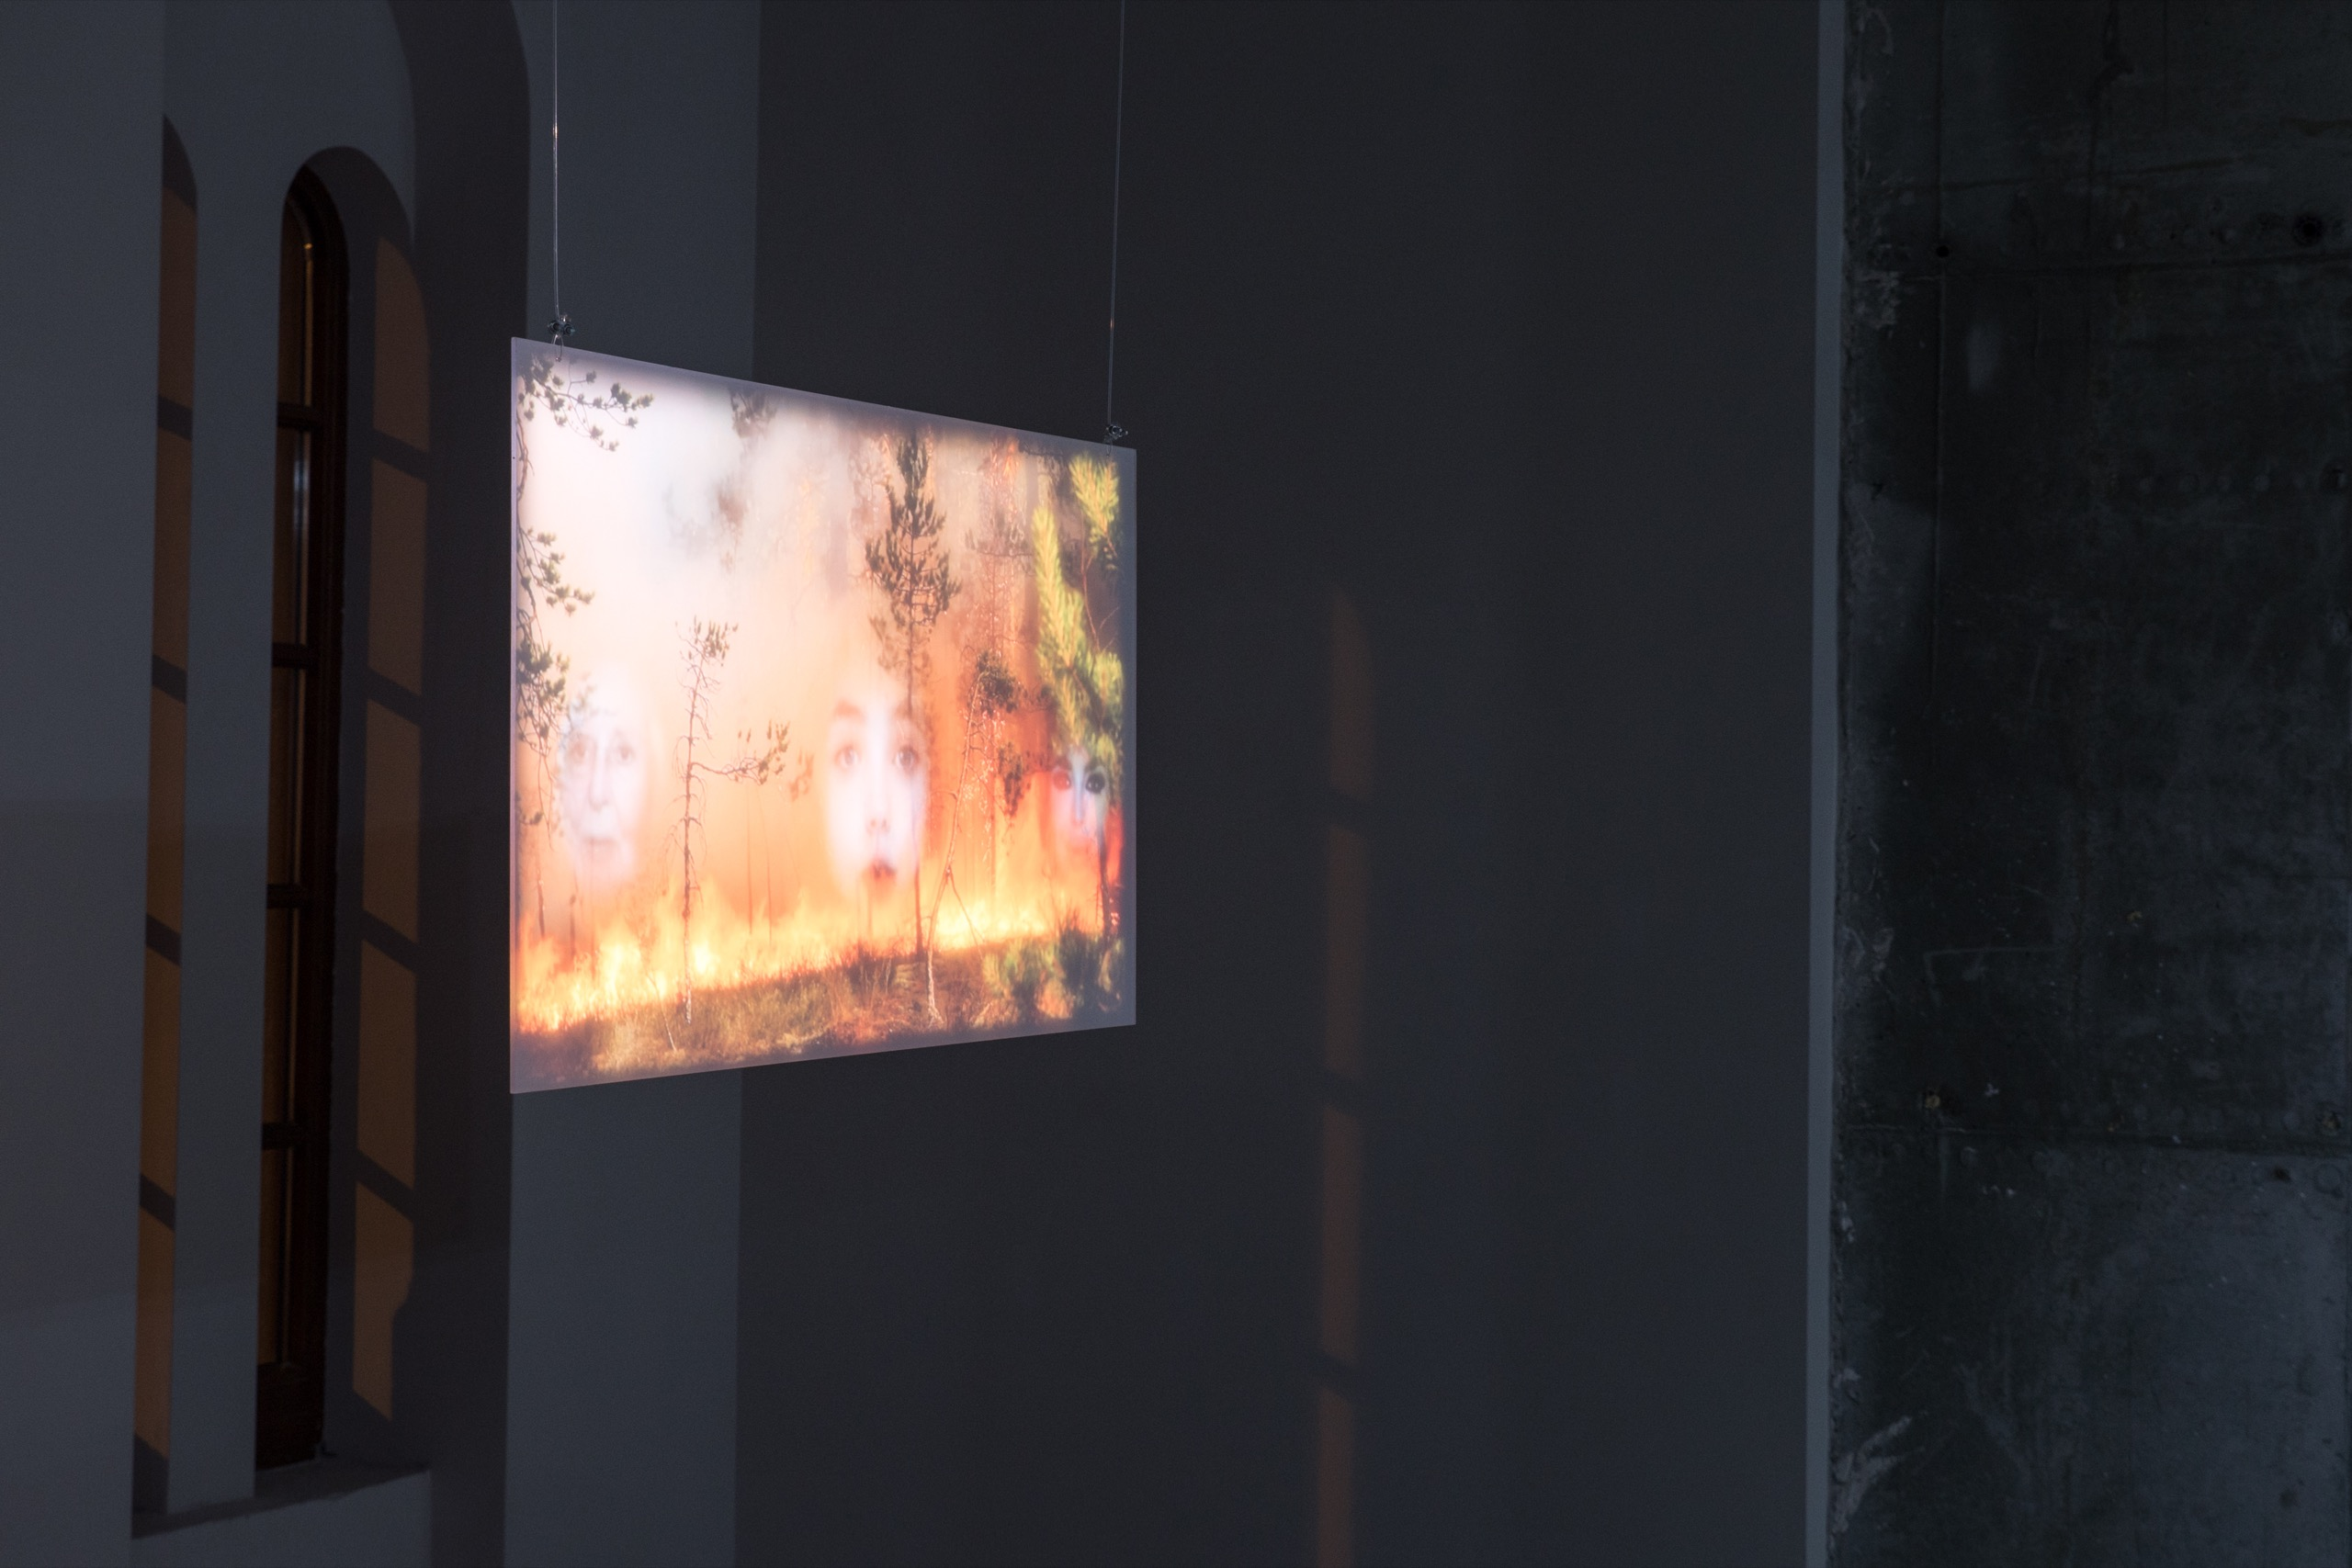 Maria Guta, 'Keeping up With the Apocalypse', 2021, video-installation, 4:10 min.